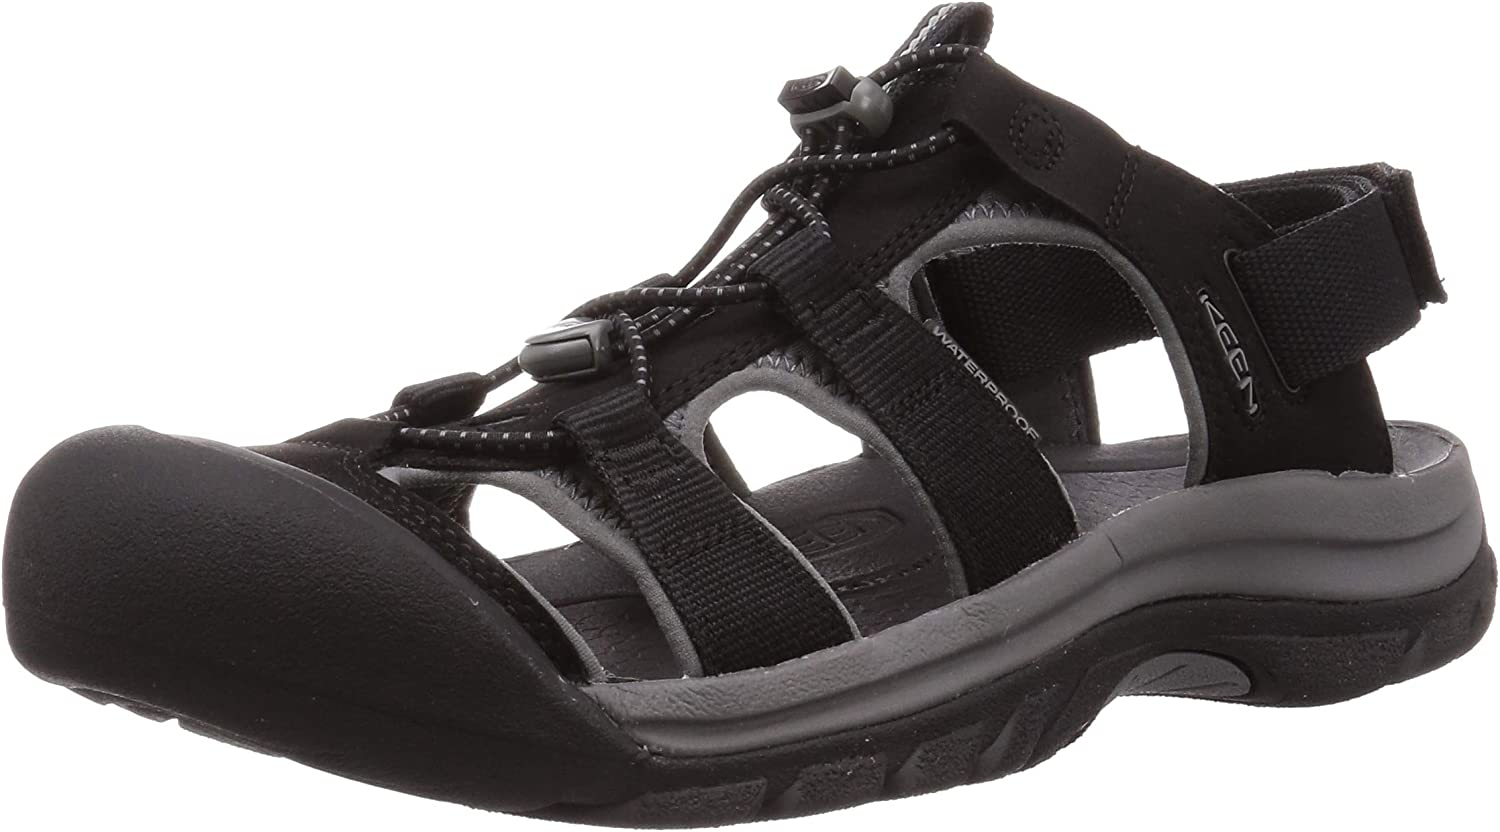 KEEN Outlet ☆ Free Shipping Rapids H2 Men's - Sandal Ranking TOP18